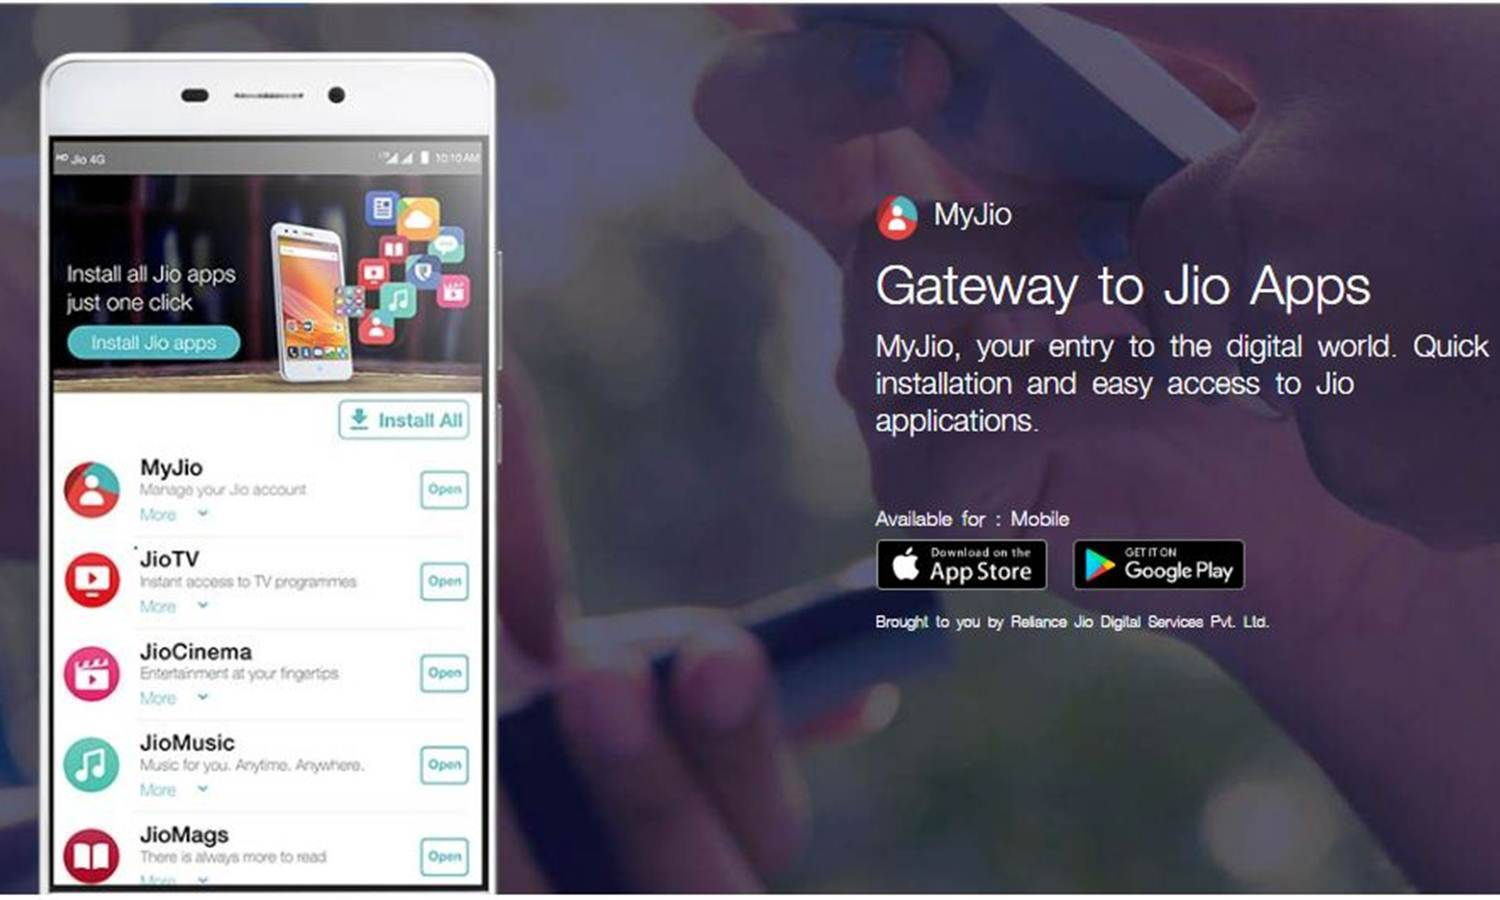 Reliance Jio 4G services: Here is all you need to know about Jio